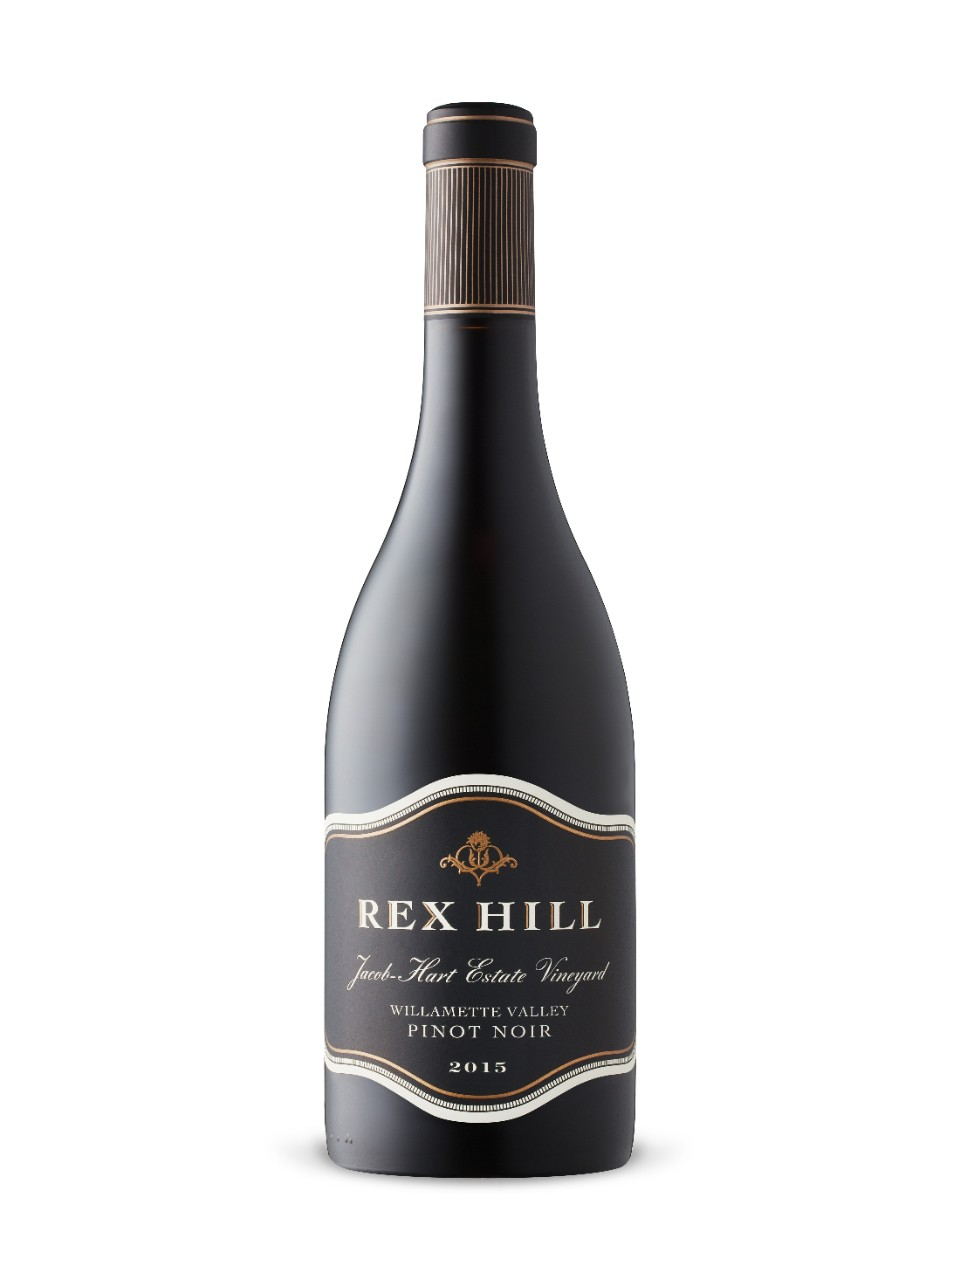 Pinot Noir Jacob-Hart Estate Vineyard Rex Hill 2015